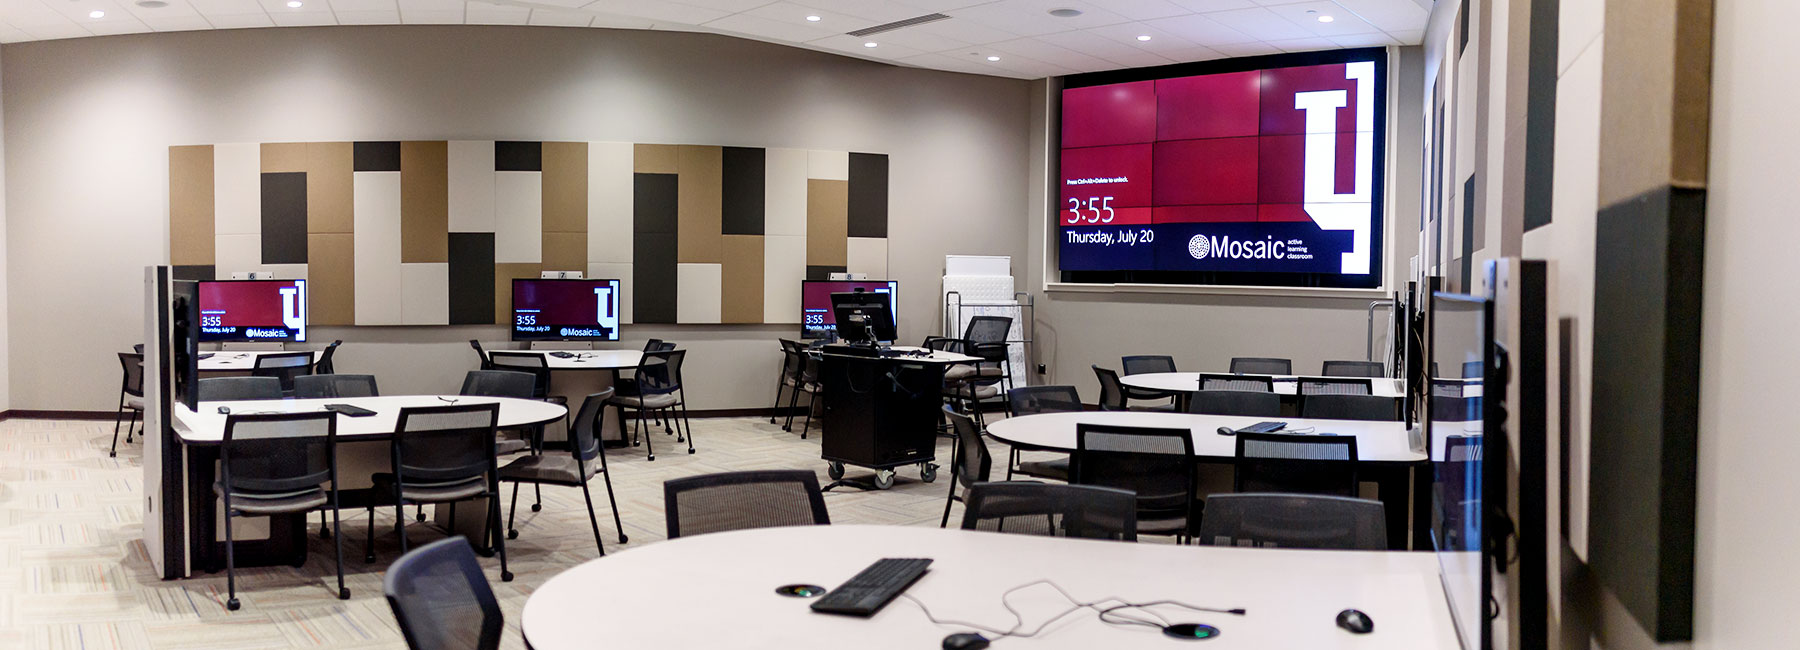 LE104 Rooms Explore Classrooms Learning Spaces Indiana University